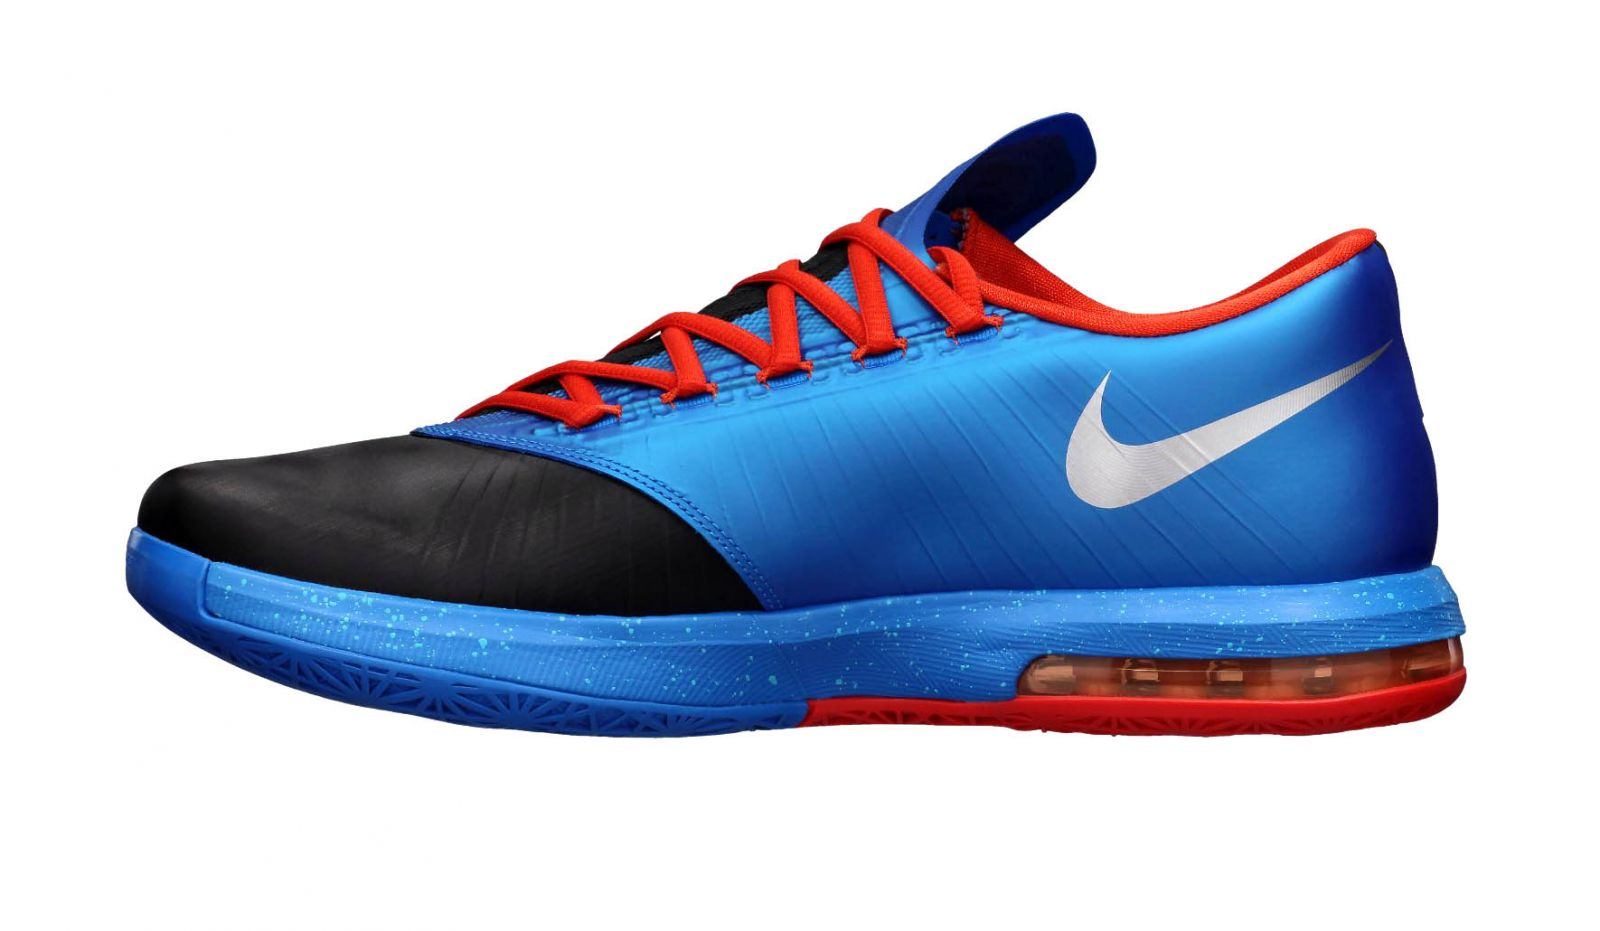 Nike KD VI  OKC Away  - Now Available  8d122173e